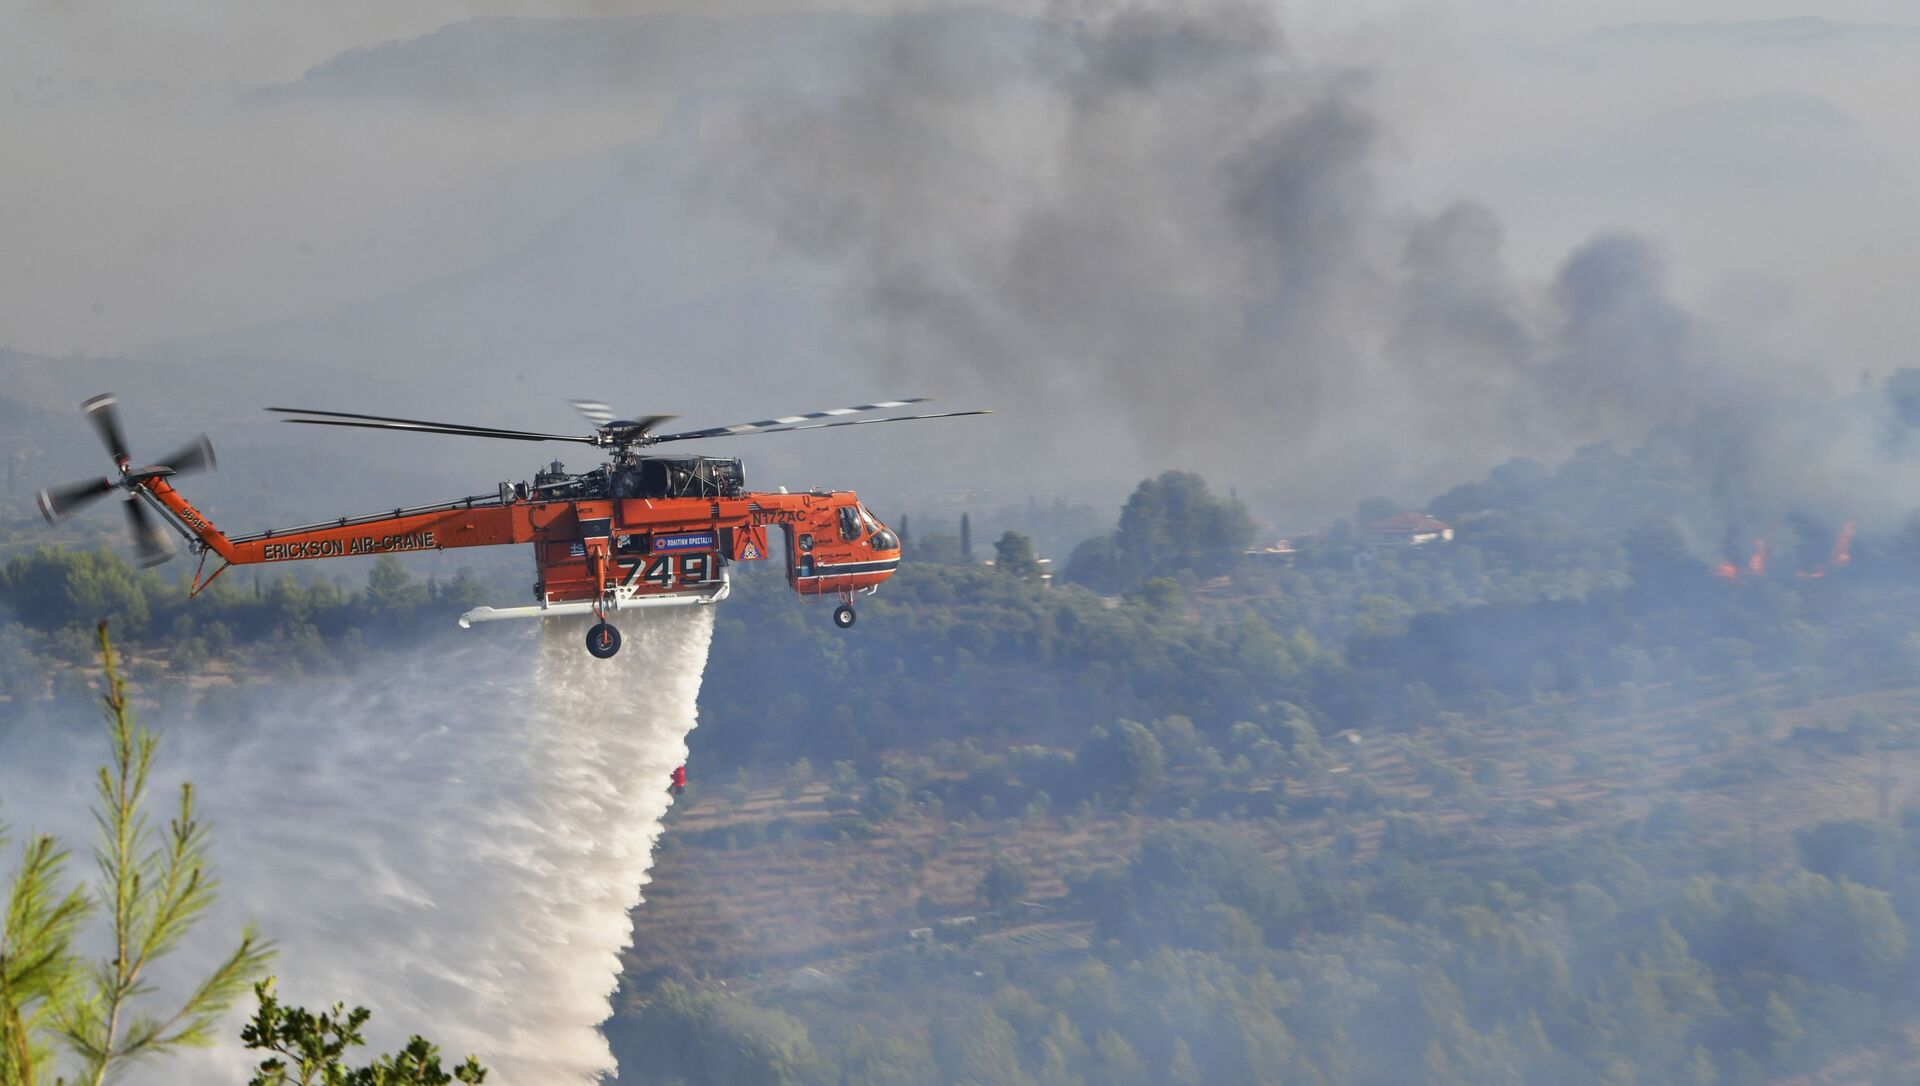 A helicopter drops water during a wildfire in ancient Olympia, western Greece, Thursday, 5 August 2021.  - Sputnik International, 1920, 05.08.2021